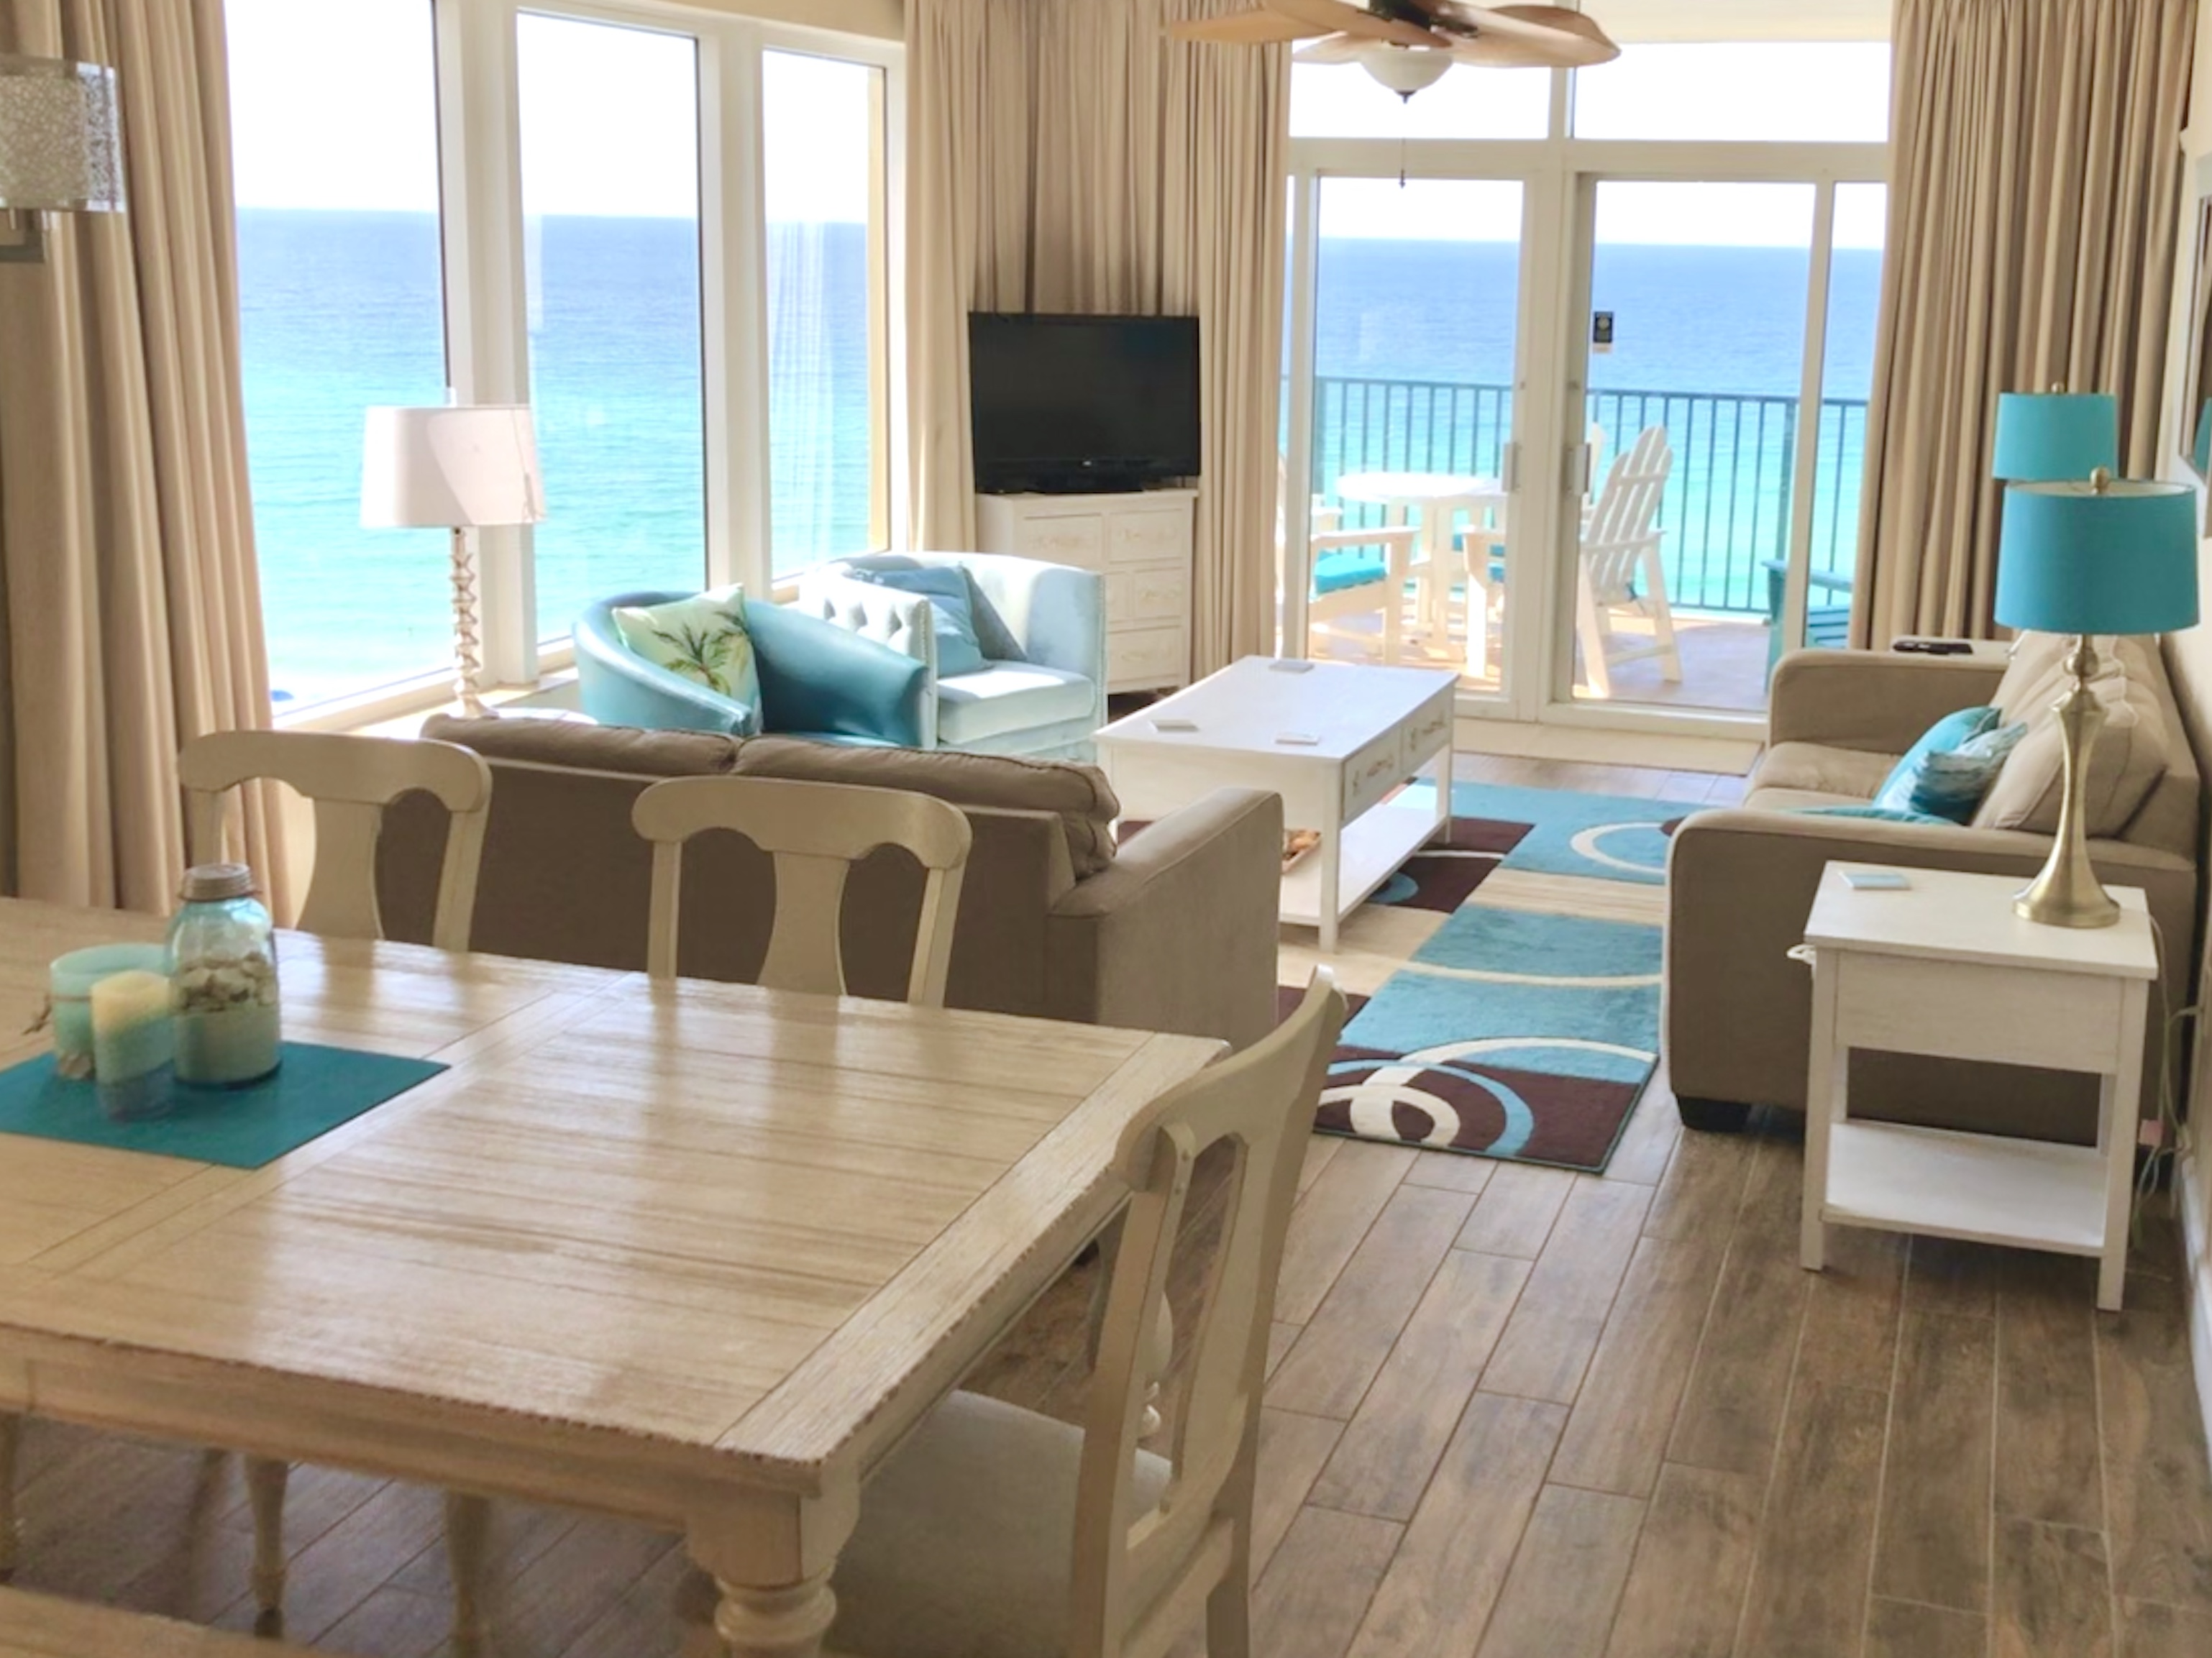 dining and family room at Sandnsol destin condo